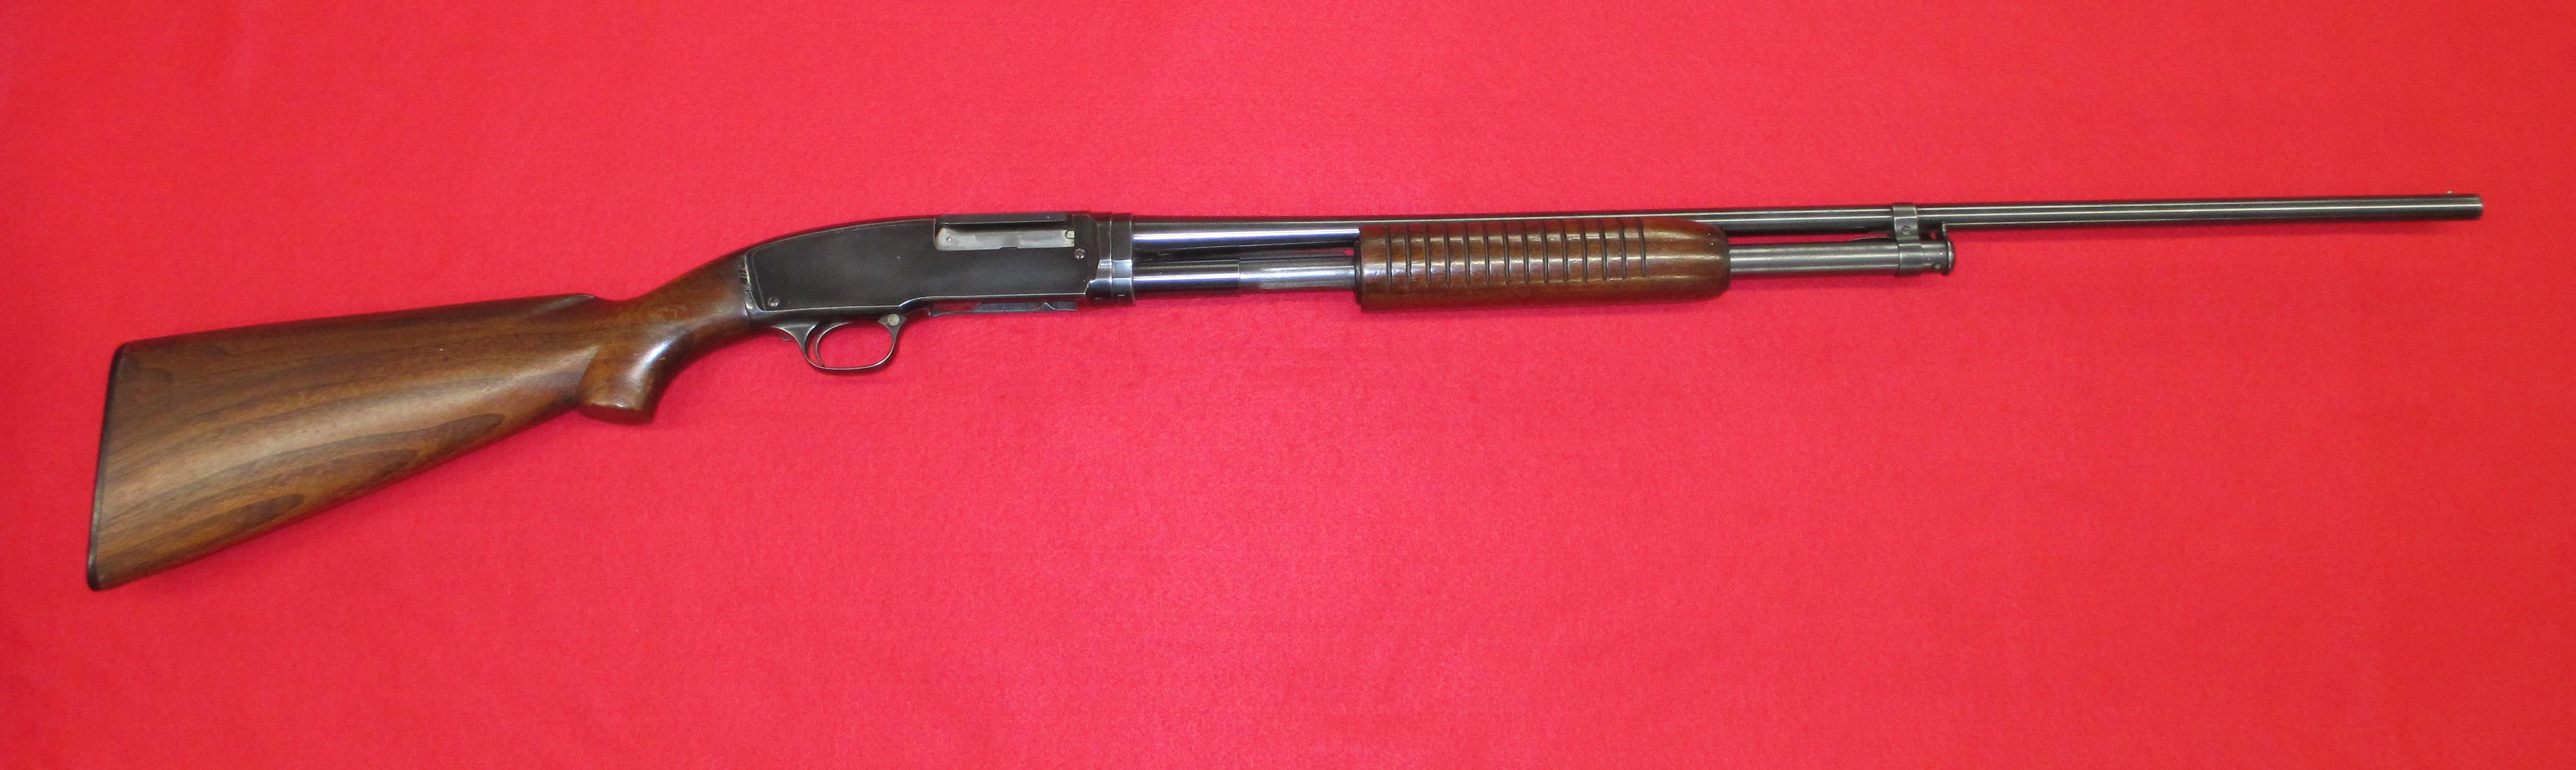 Winchester Model 42, .410ga  Guns > Shotguns > Winchester Shotguns - Modern > Pump Action > Hunting